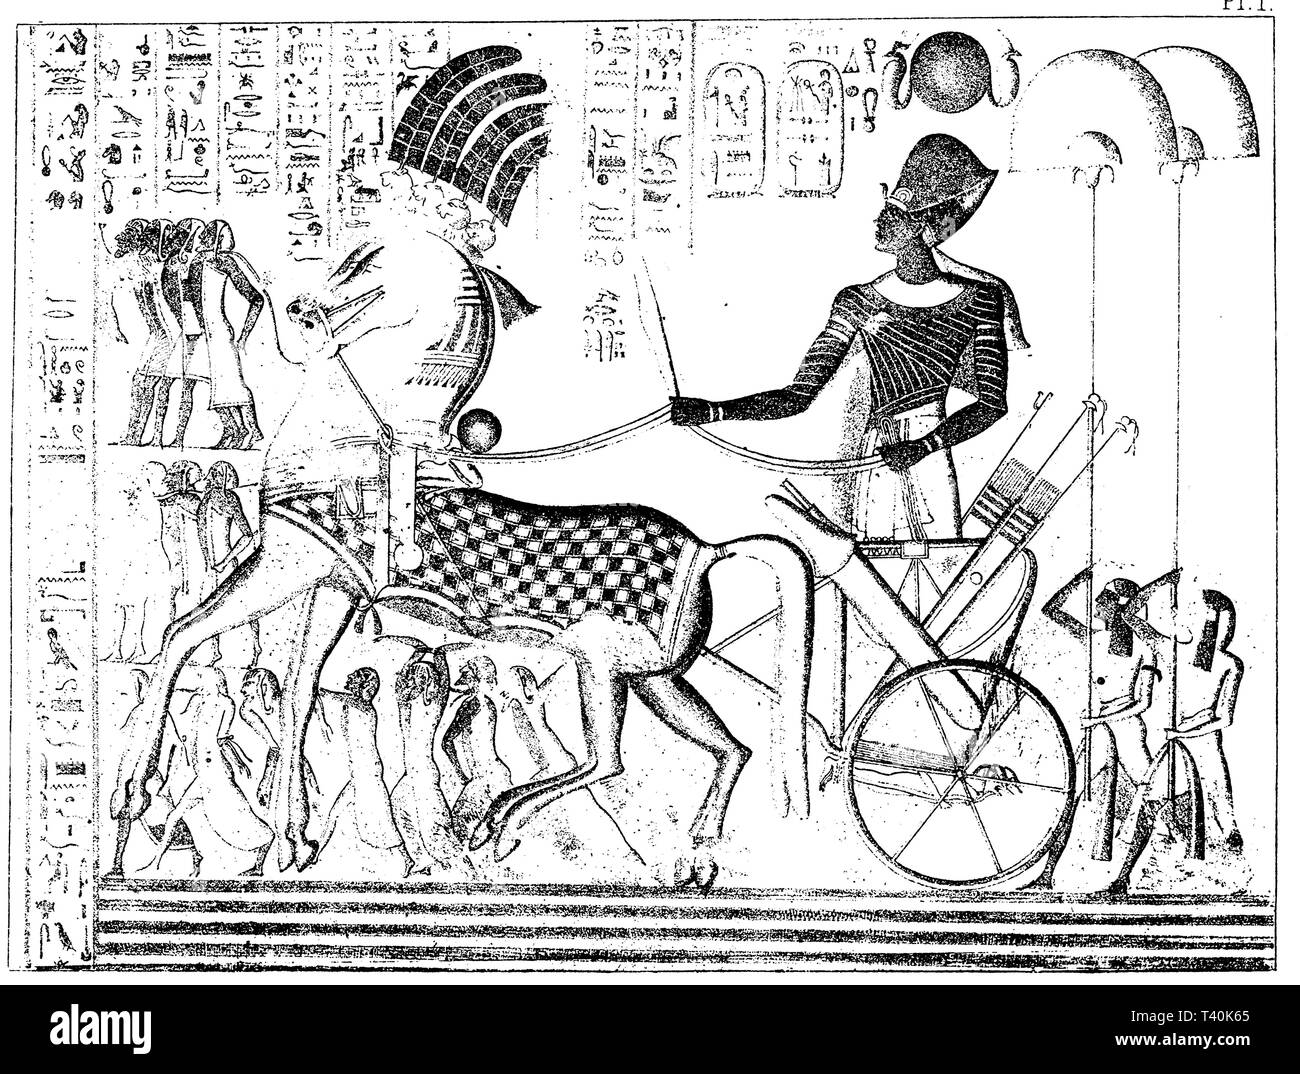 Return of Ramses III with prisoners (Medinet-Habu). After Wilkinson, 'Manners & Customs of the ancient Egyptians', - Stock Image